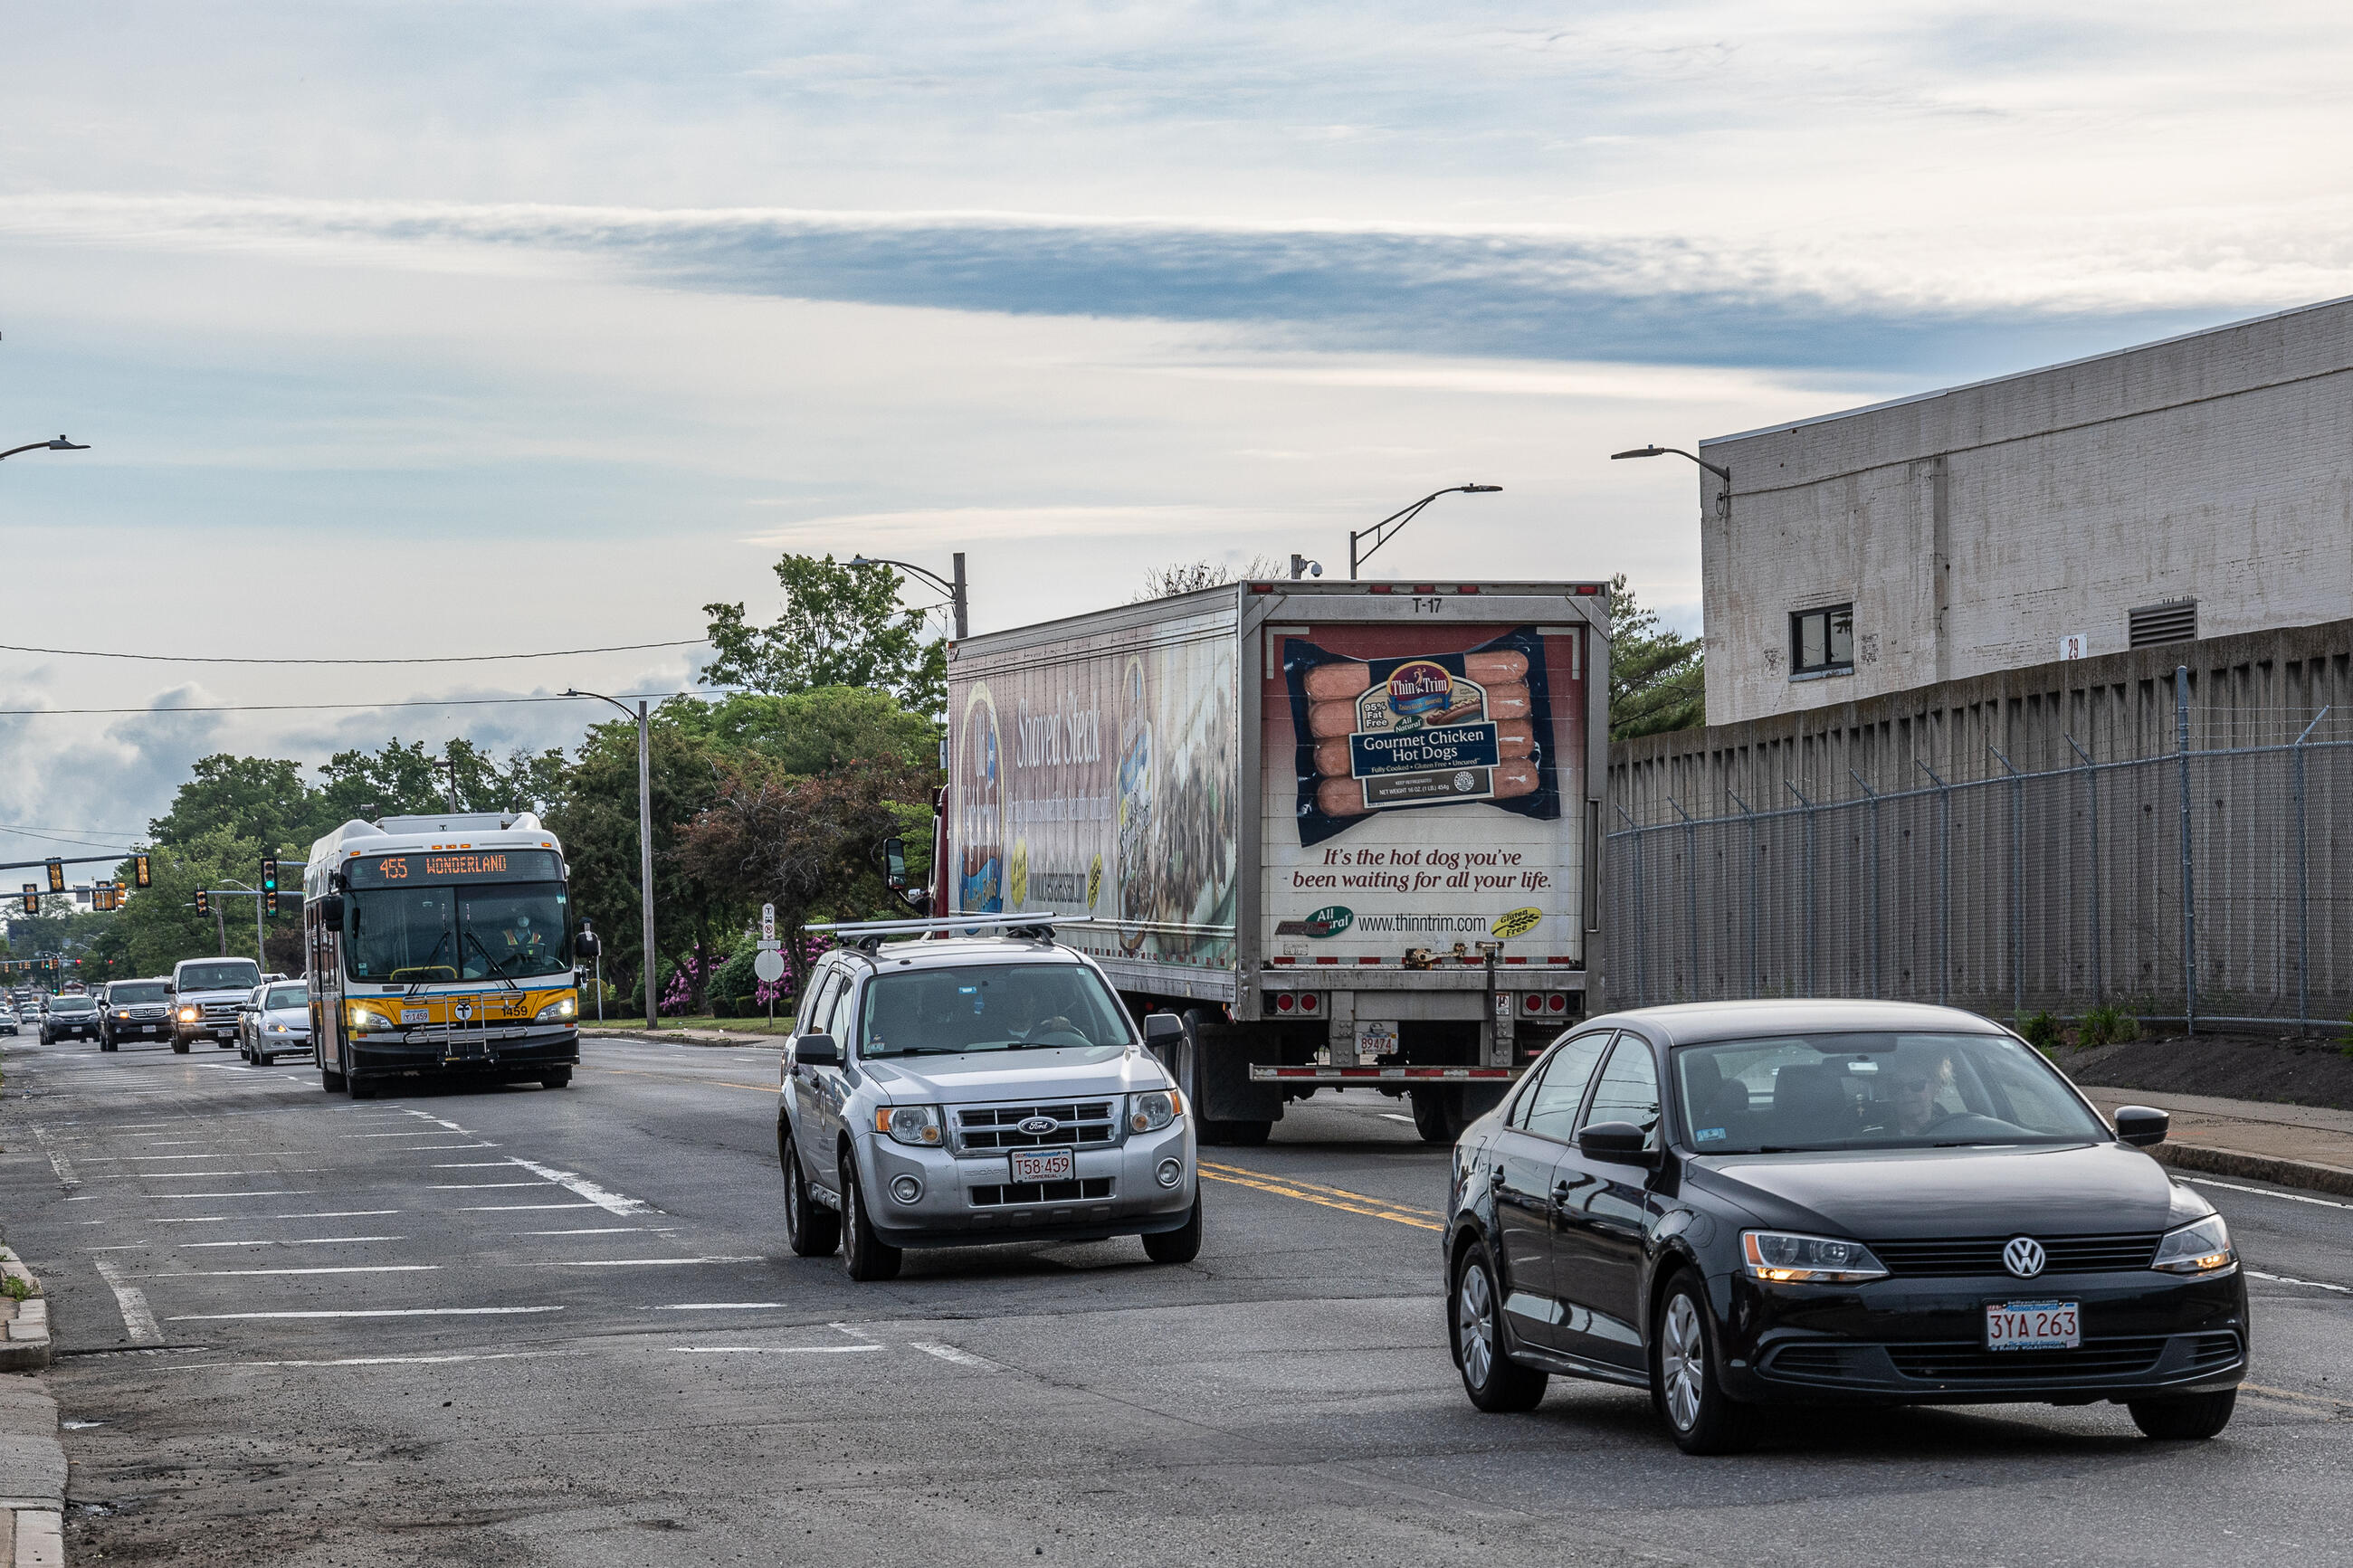 Western Ave in Lynn was identified as a major source of bus delay through MassDOT's Lynn Transit Action Plan process.